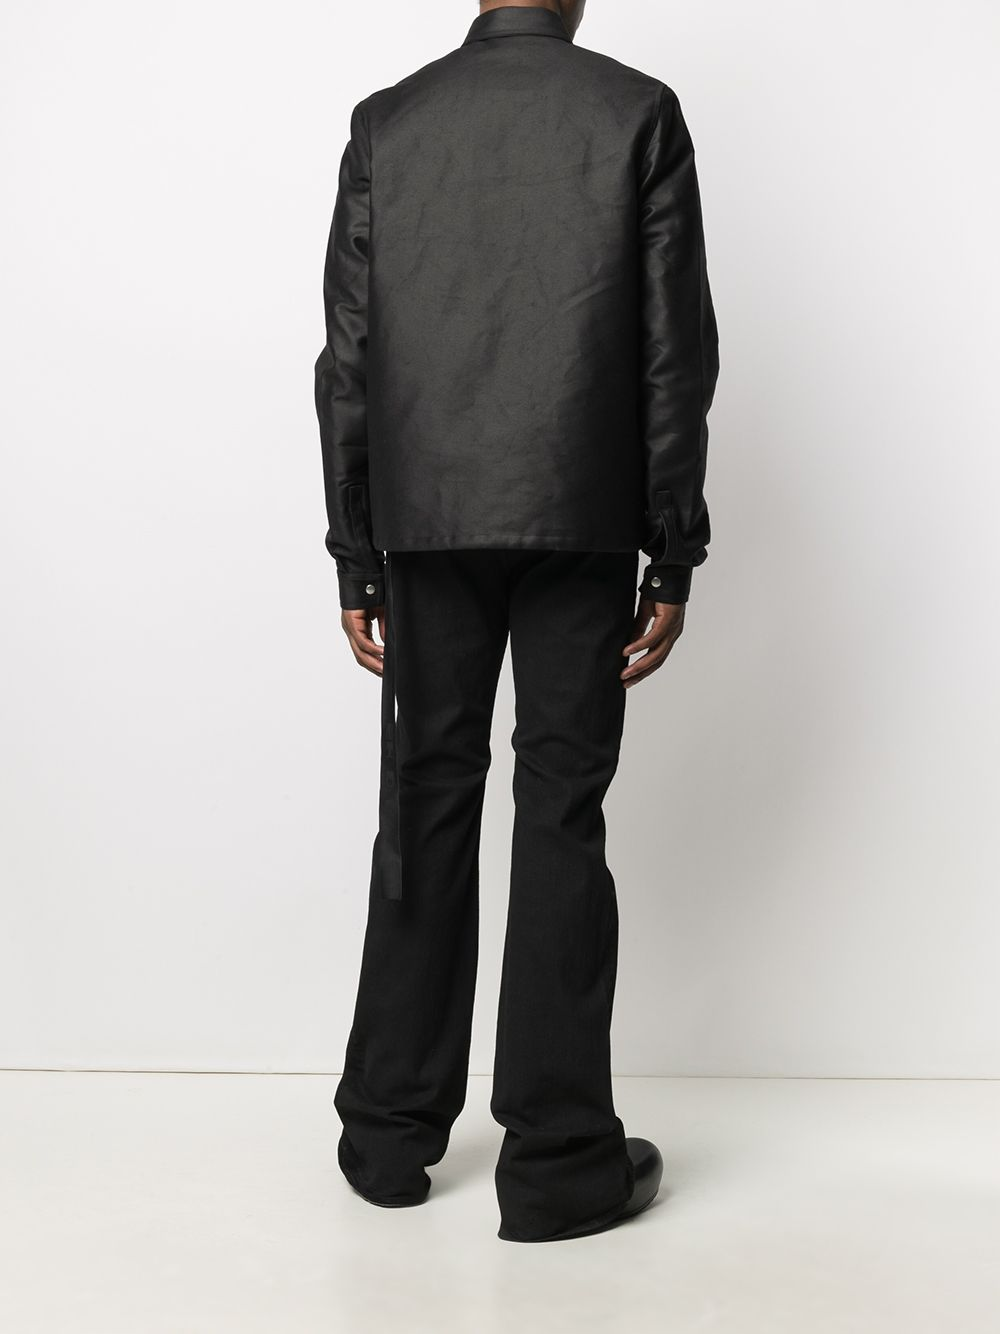 giacca snap front uomo nera RICK OWENS DRKSHDW   Giacche   DU02A3782 NDK09